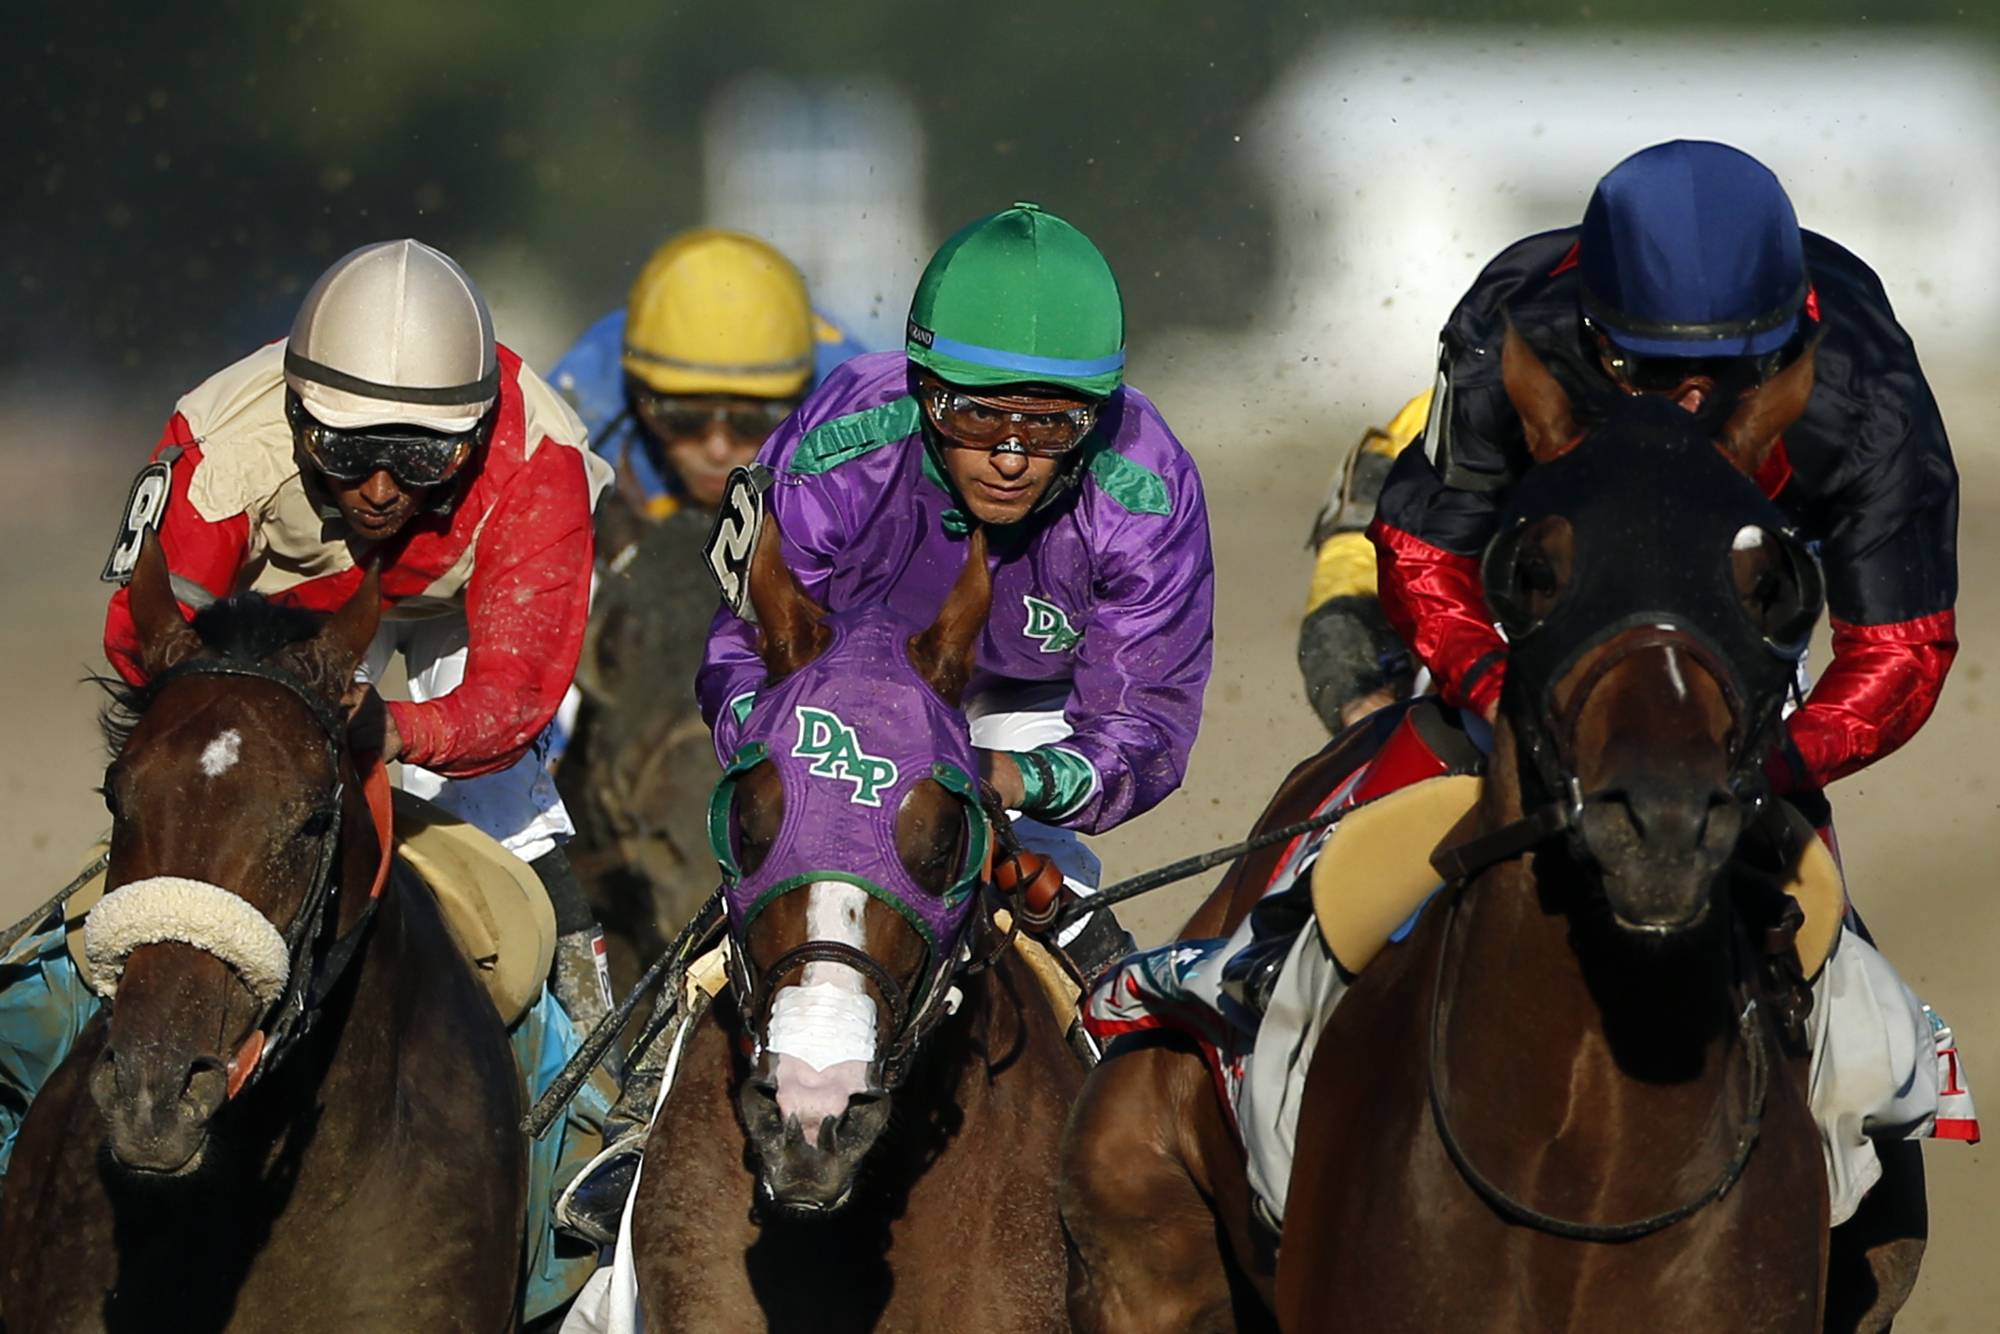 California Chrome, center, is flanked by Wicked Strong, left, and Tonalist, right, as they run down the backstretch during the 146th running of the Belmont Stakes horse race at Belmont Park, Saturday, June 7, 2014, in Elmont, N.Y.  Tonalist went on to win the race, denying California Chrome the Triple Crown victory.